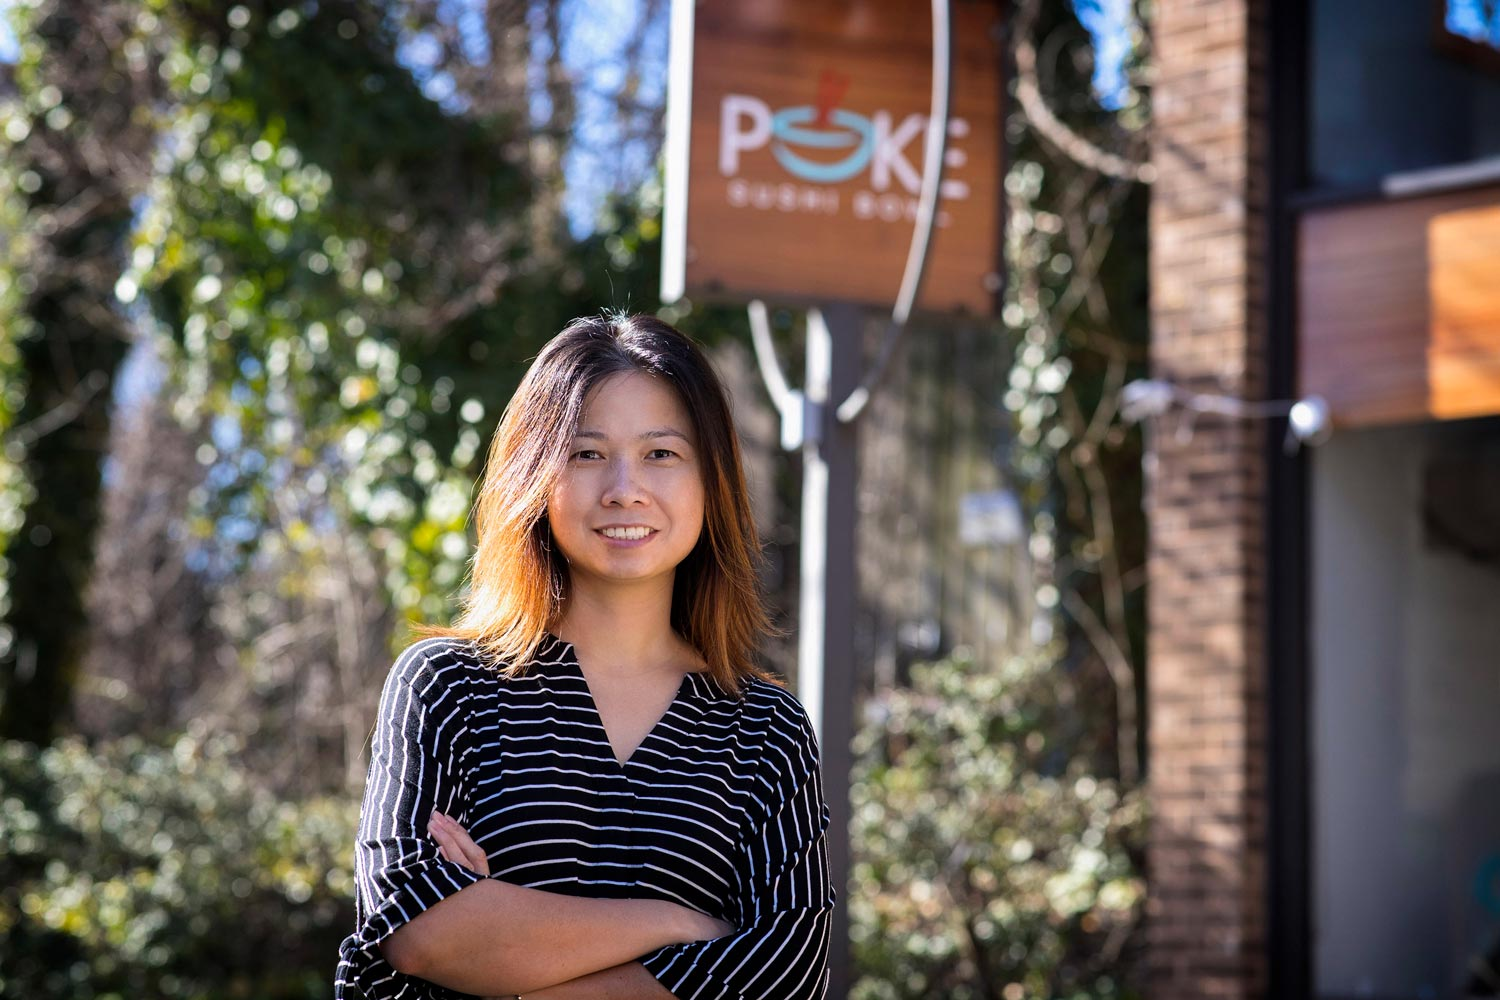 Phung Huynh and her husband, Bo Zhu, opened Poke in 2016.